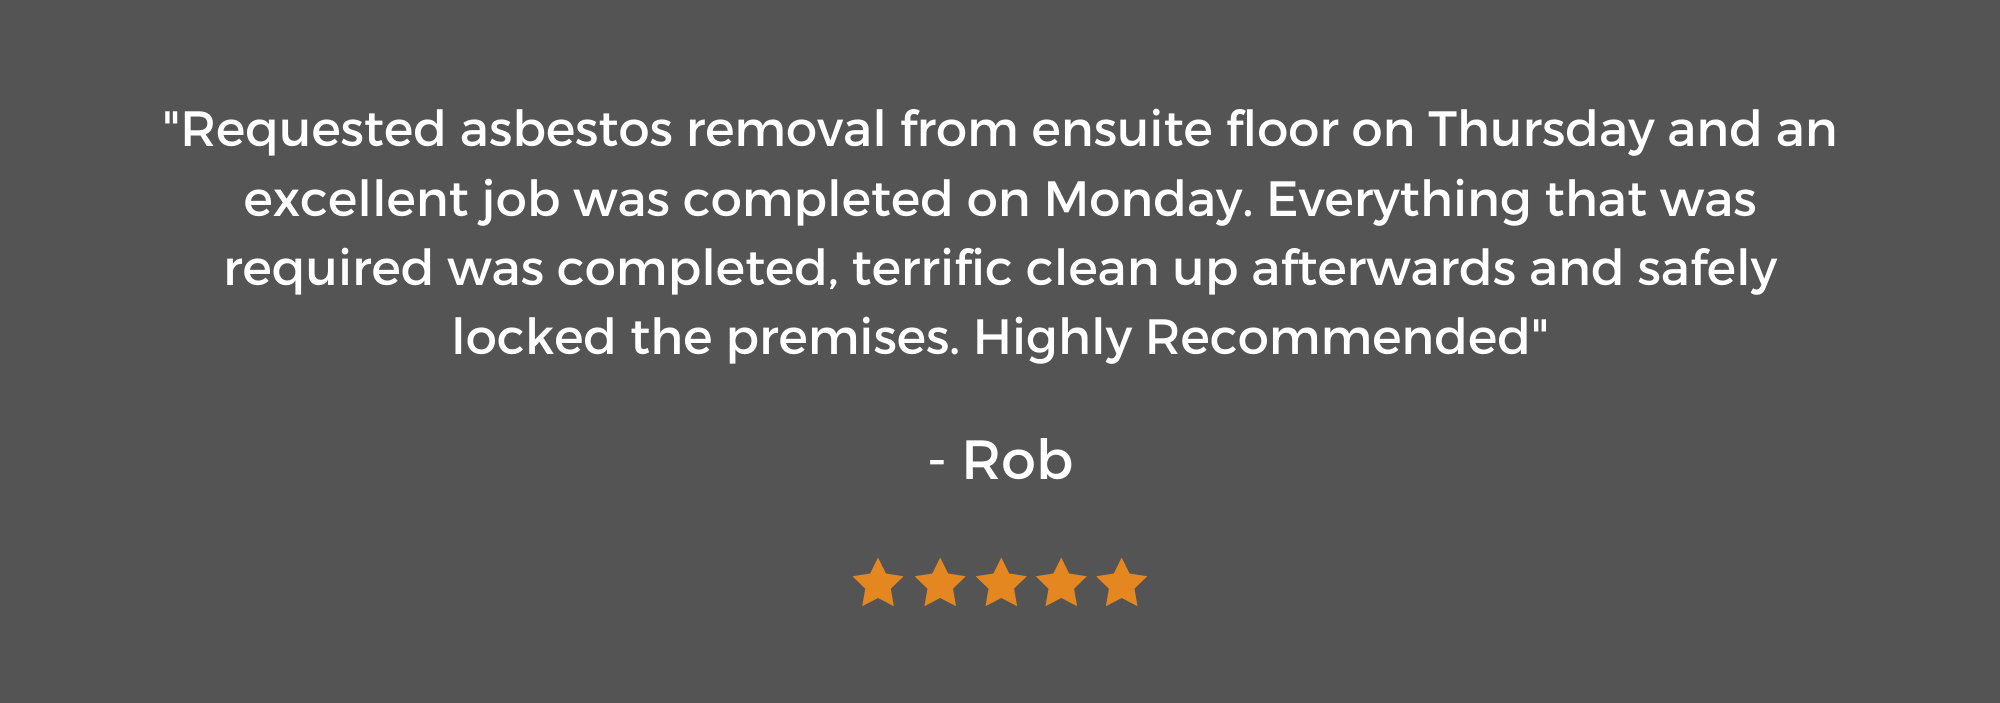 5 Star Review from Rob